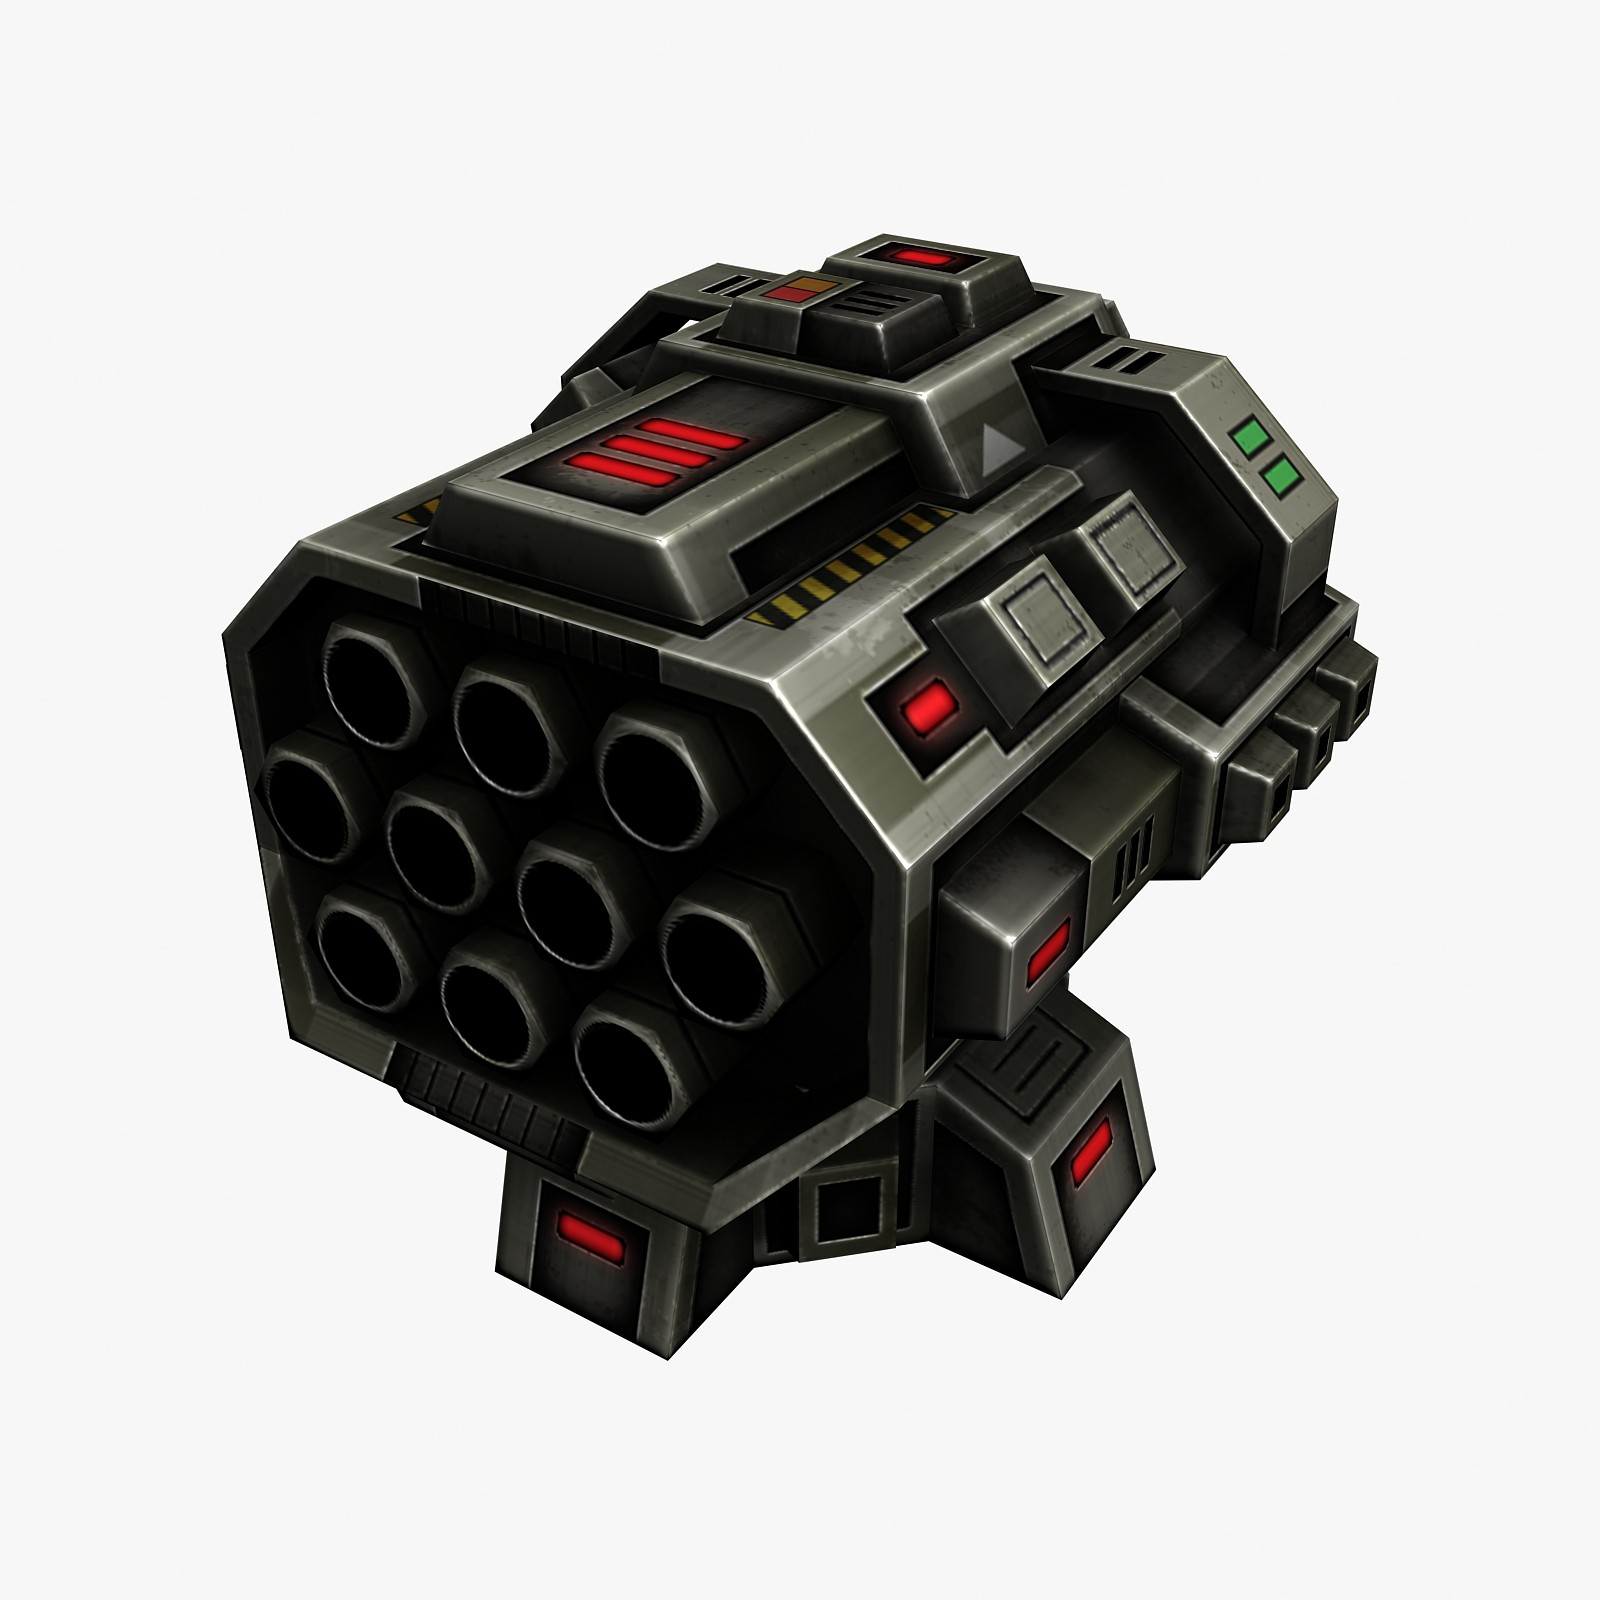 missile_launcher_2_preview_1.jpg